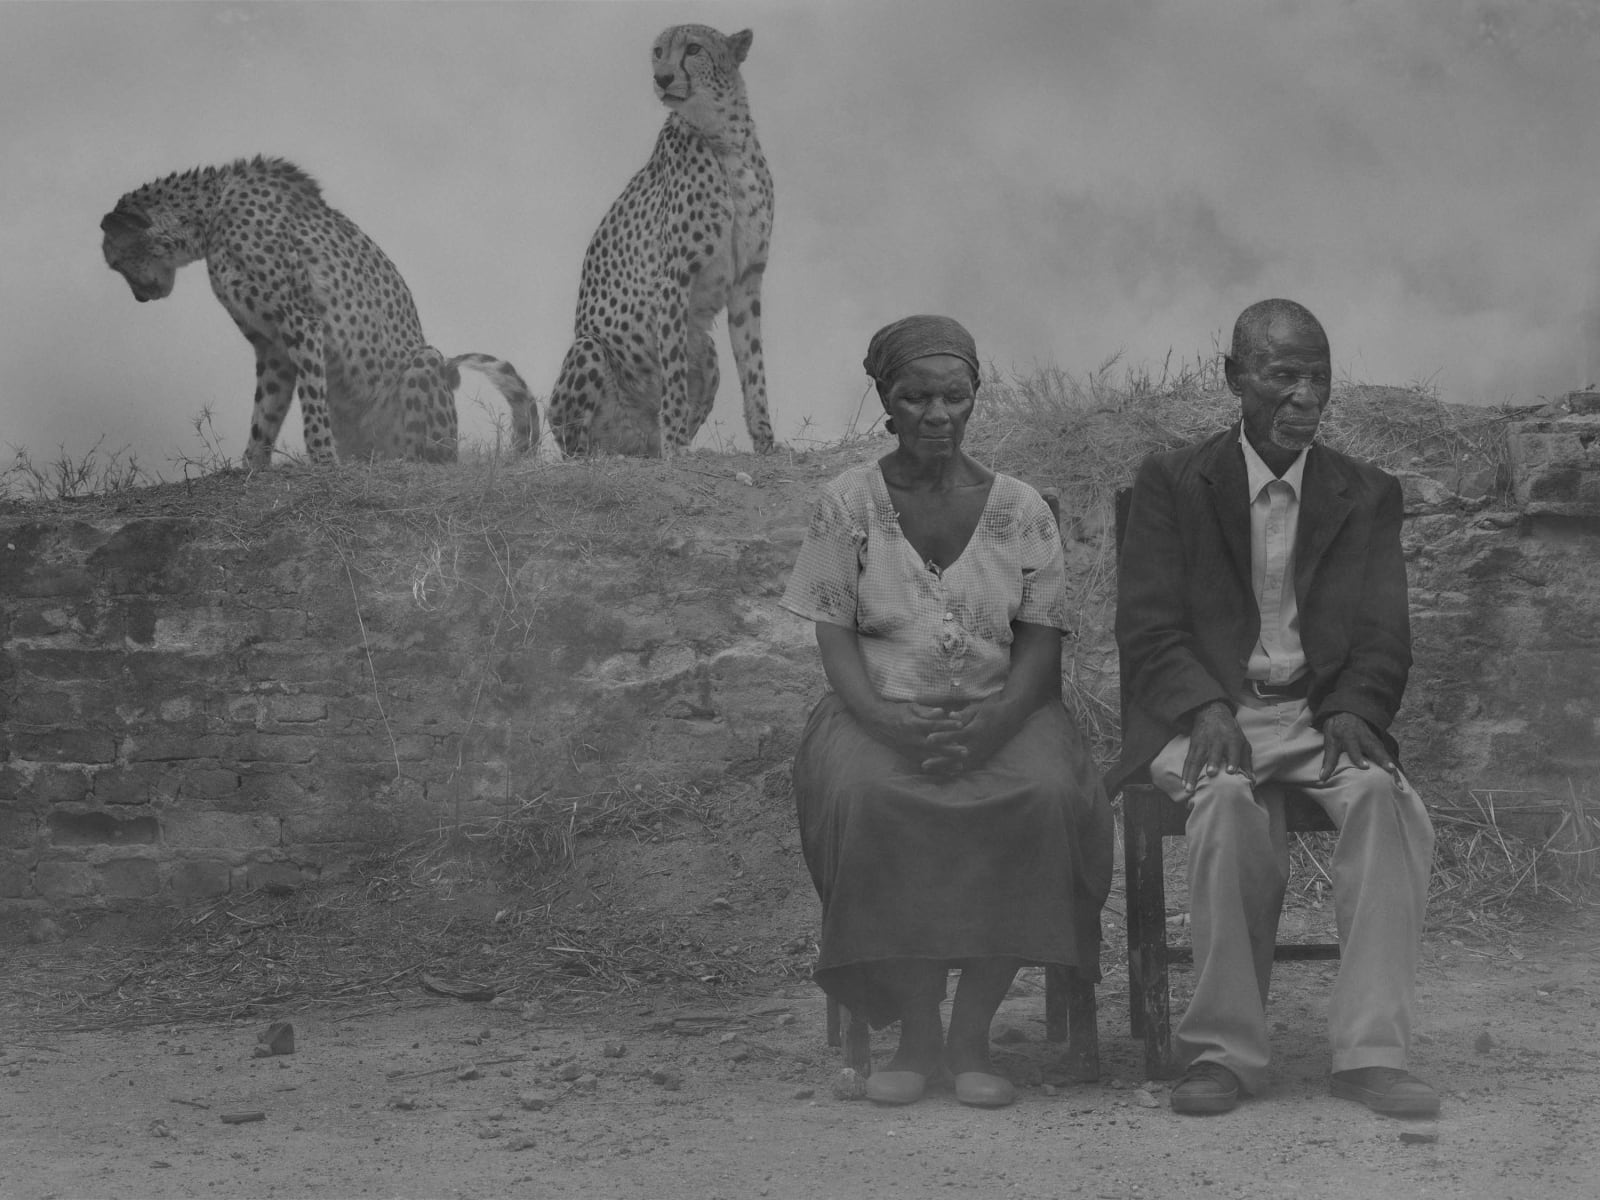 Regina and Jack sitting in chairs with cheetahs Levi and Diesel sitting behind them in fog, Zimbabwe, from the Day May Break series by Nick Brandt